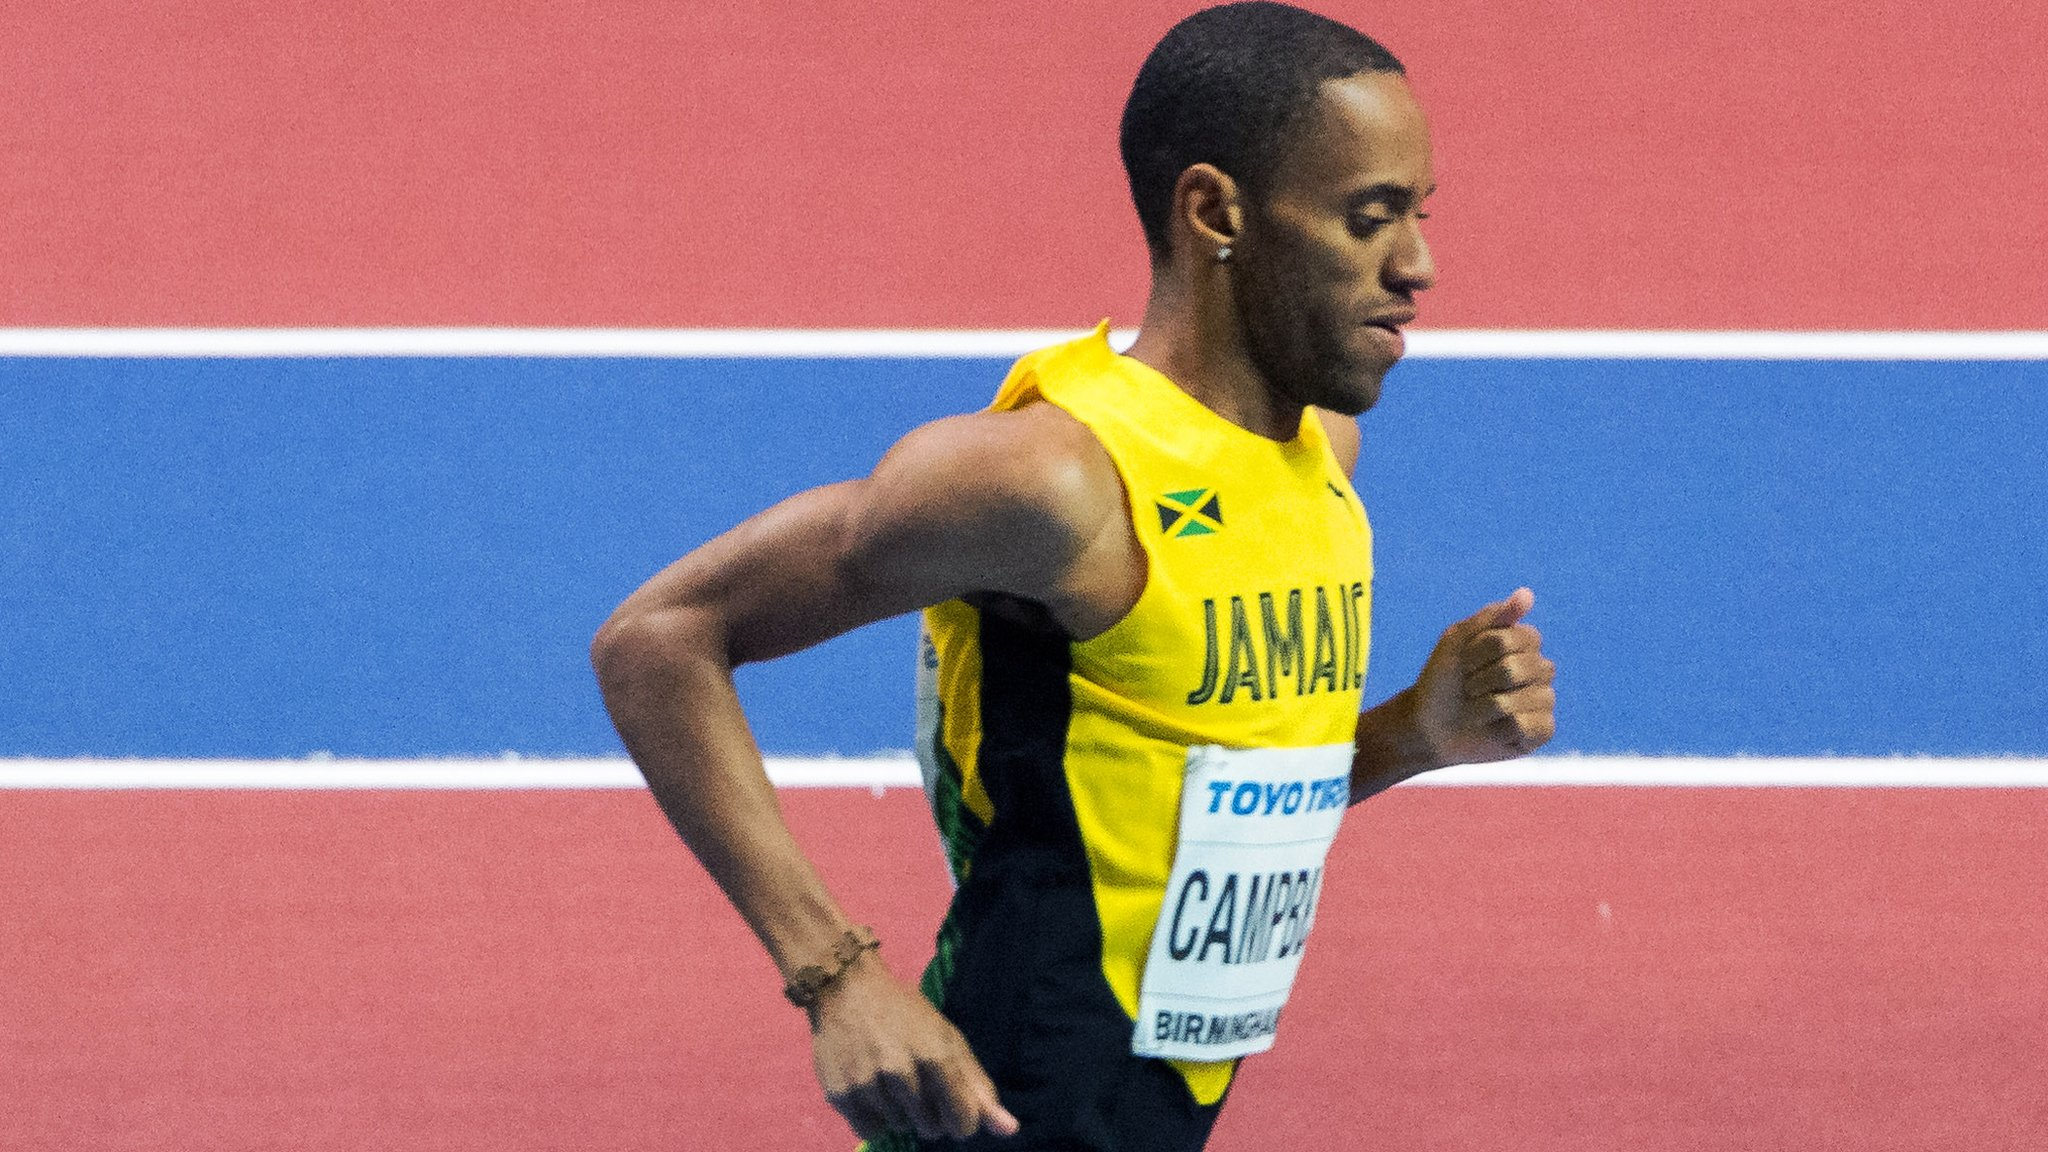 'Doctors told me I basically died' - Jamaican runner Campbell on 'scary' collapse